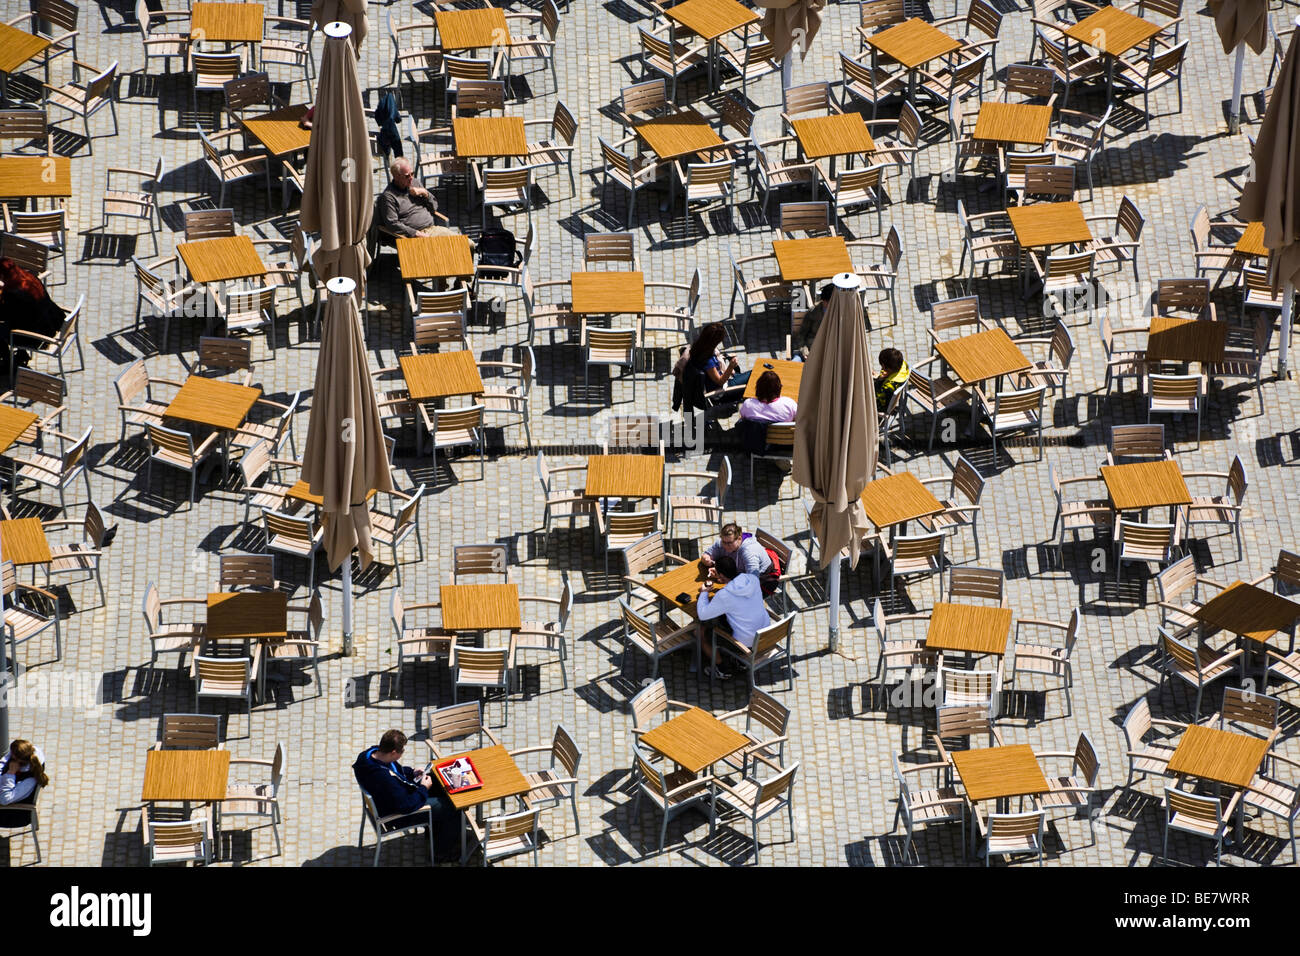 street cafe from above prager strasse street dresden germany stock photo 25989483 alamy. Black Bedroom Furniture Sets. Home Design Ideas